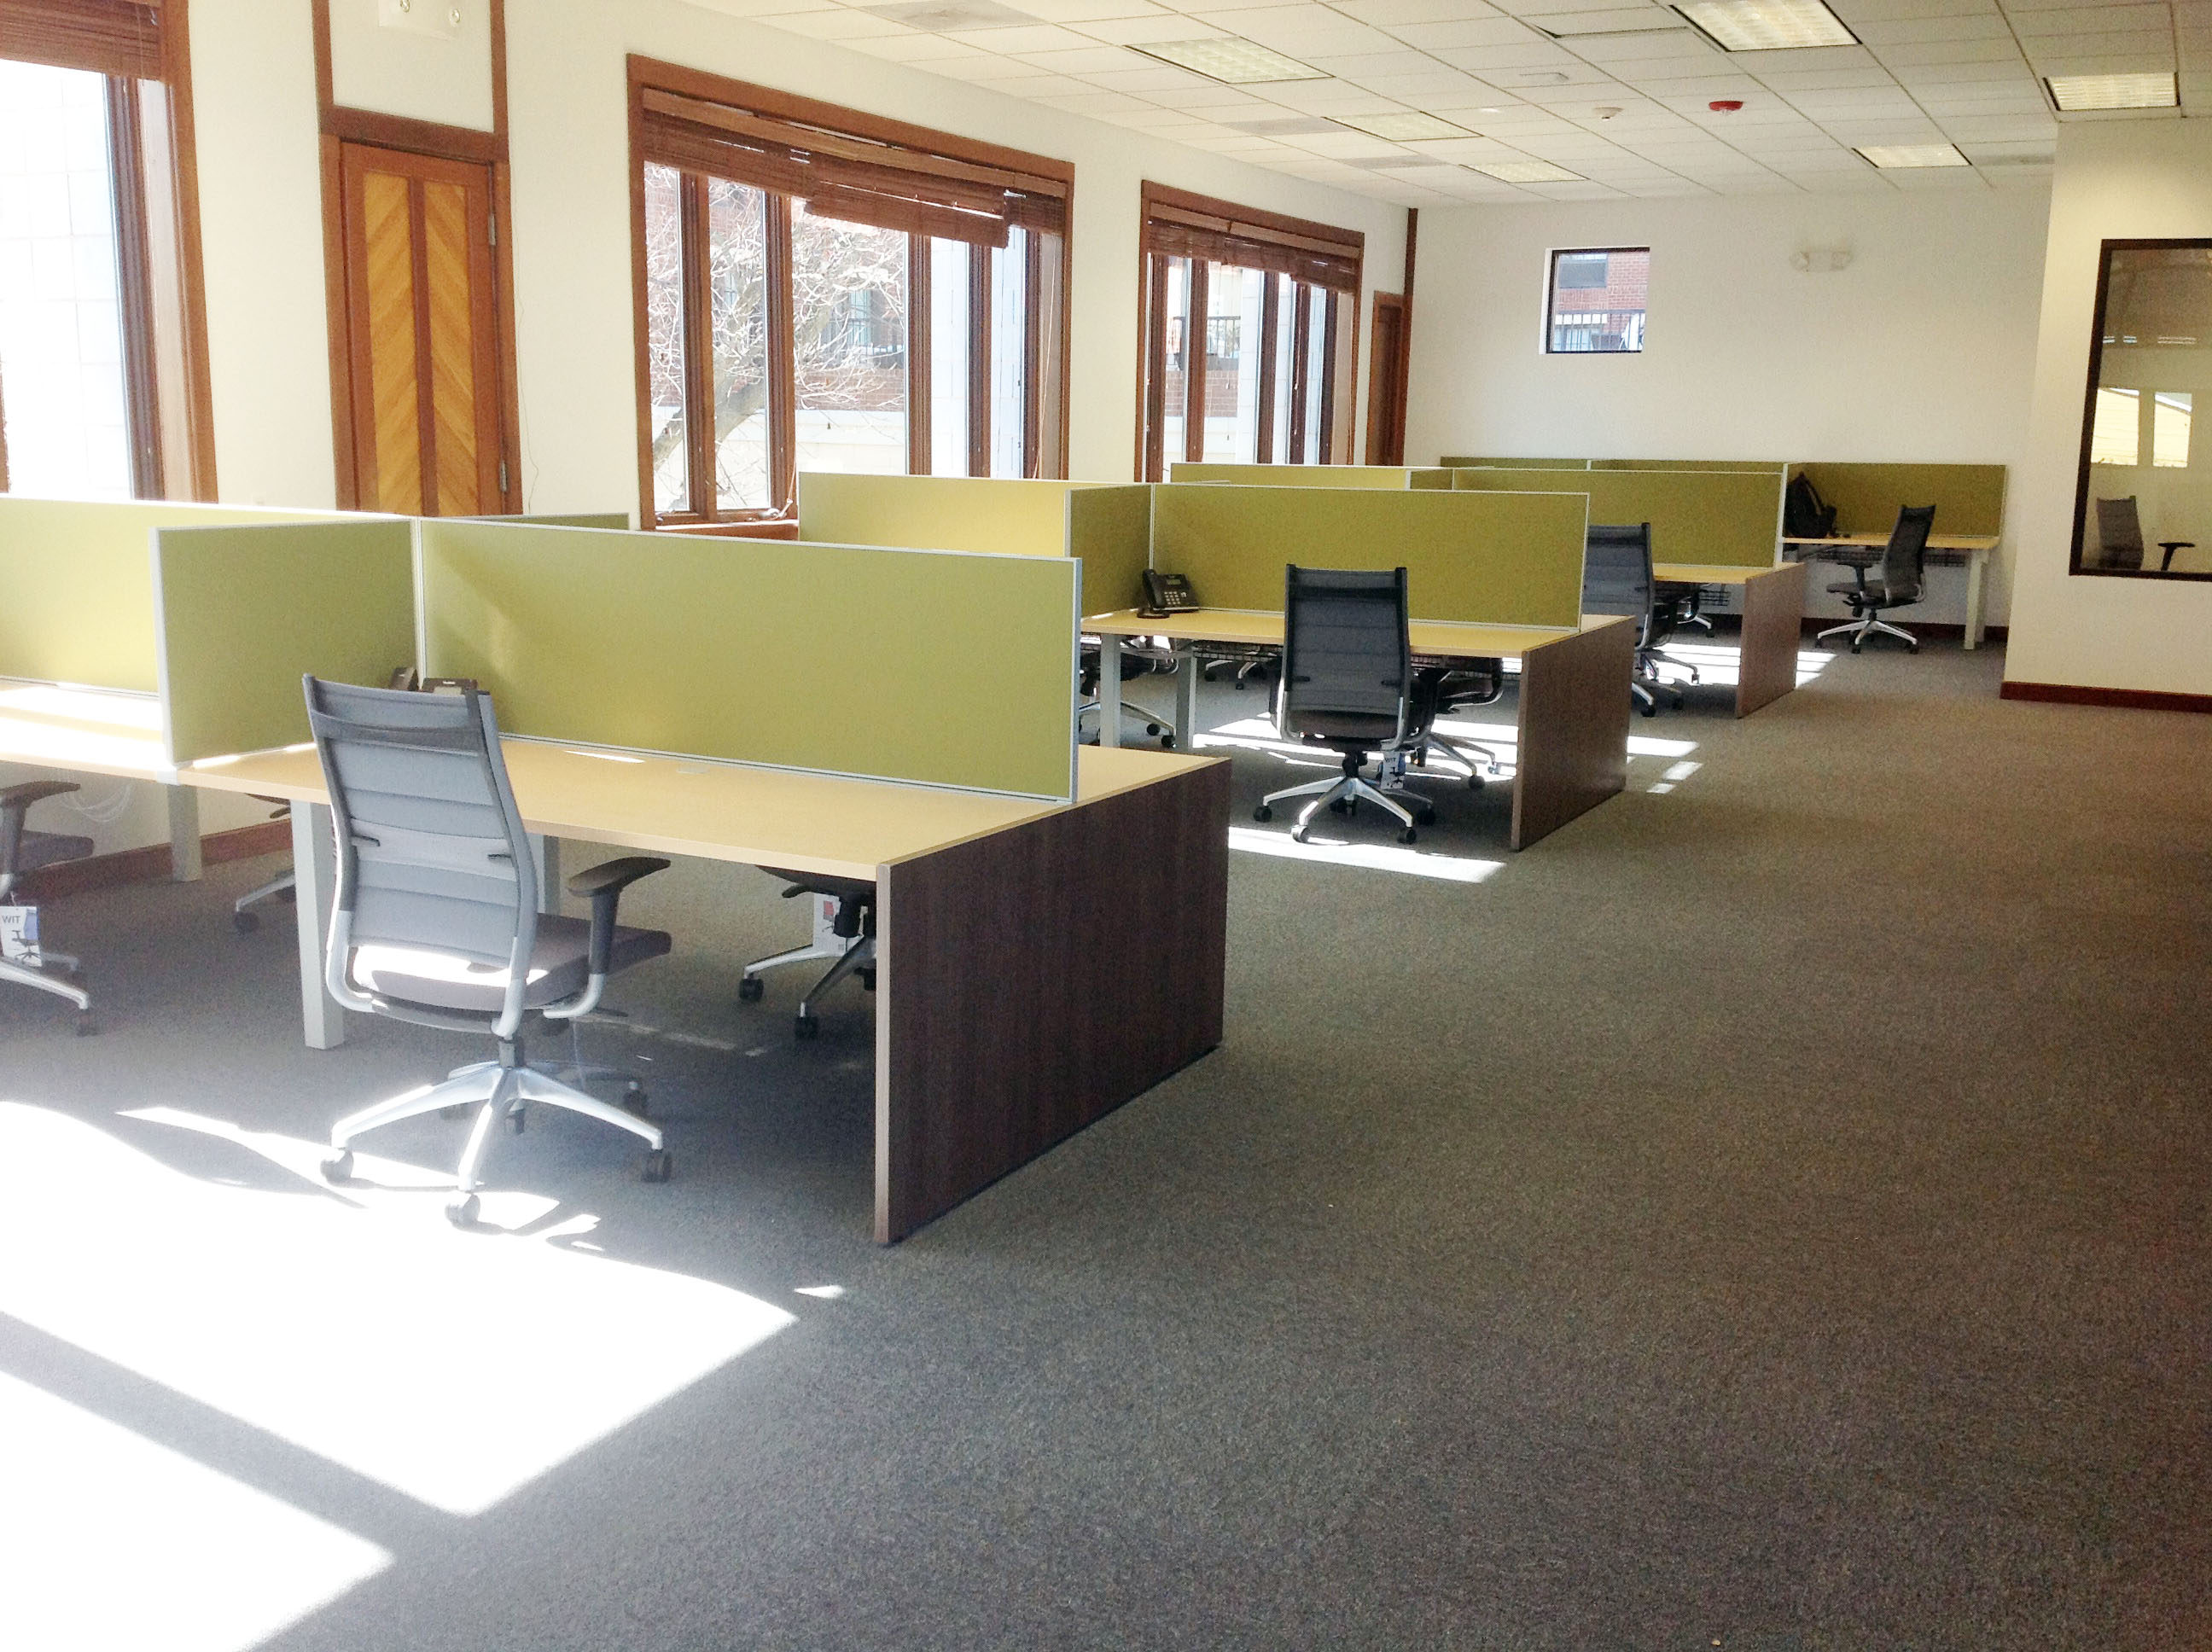 triad office gboro locations storr new nc edited used and greensboro furniture environments